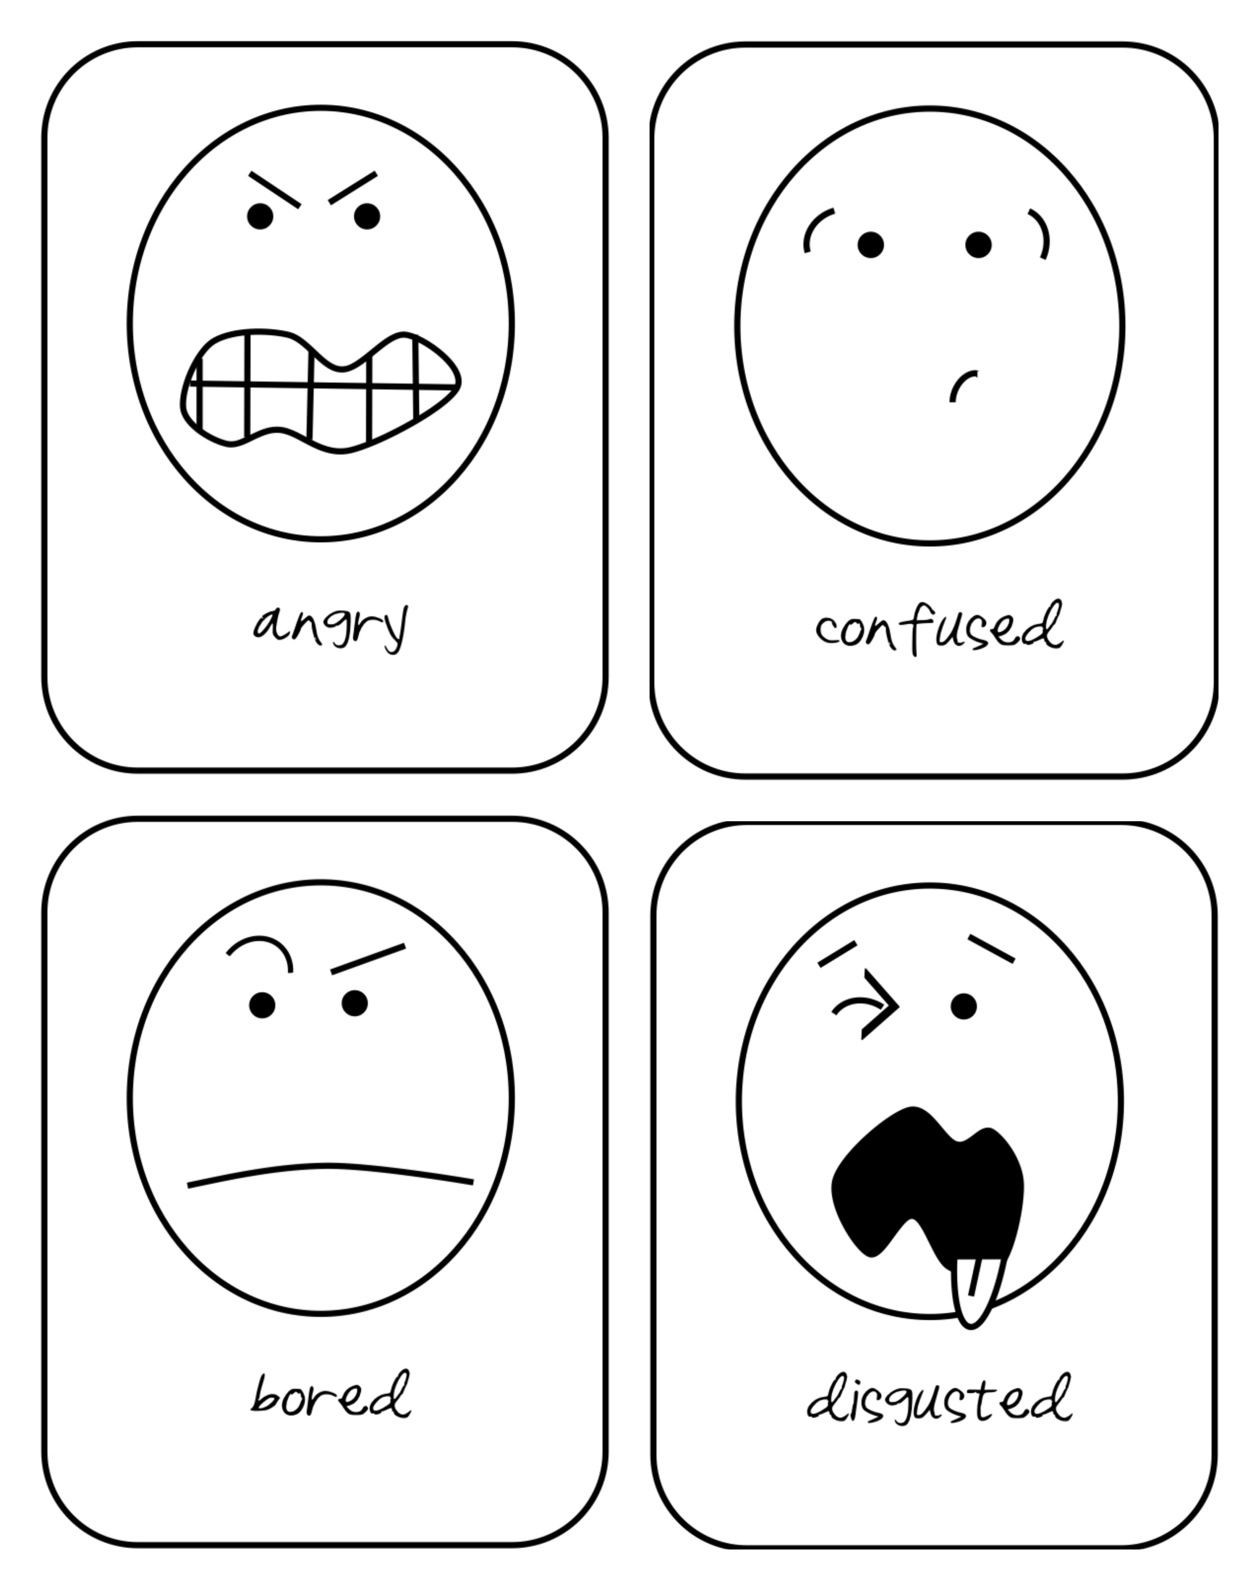 Emotions Worksheets for Preschoolers Expressing Feelings Printable Worksheets for Kids